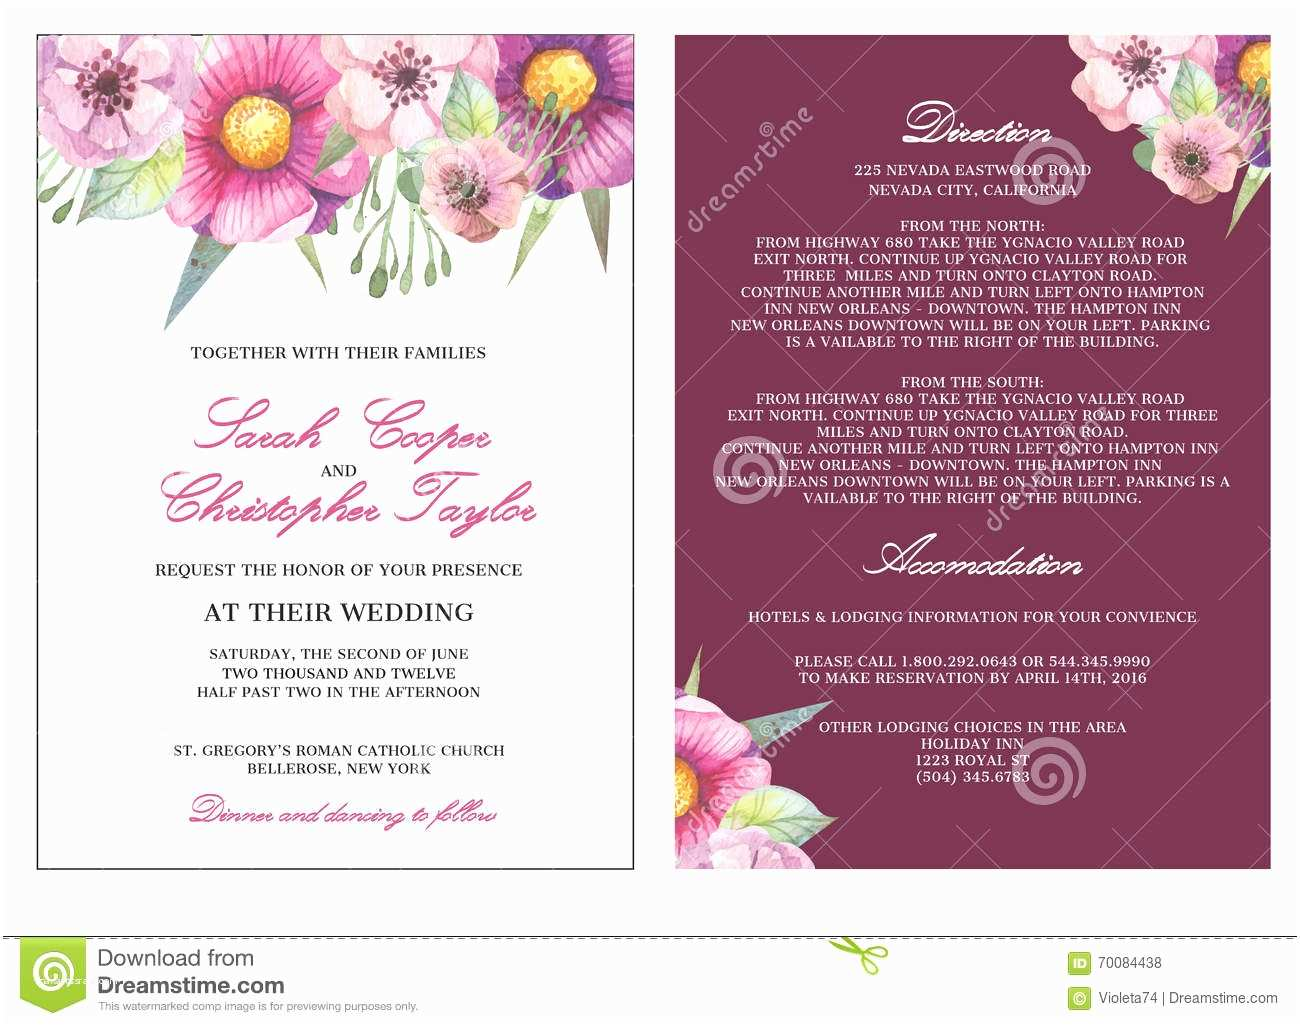 Time Frame for Wedding Invitations Wedding Invitation Card Invitation with Watercolor Flowers